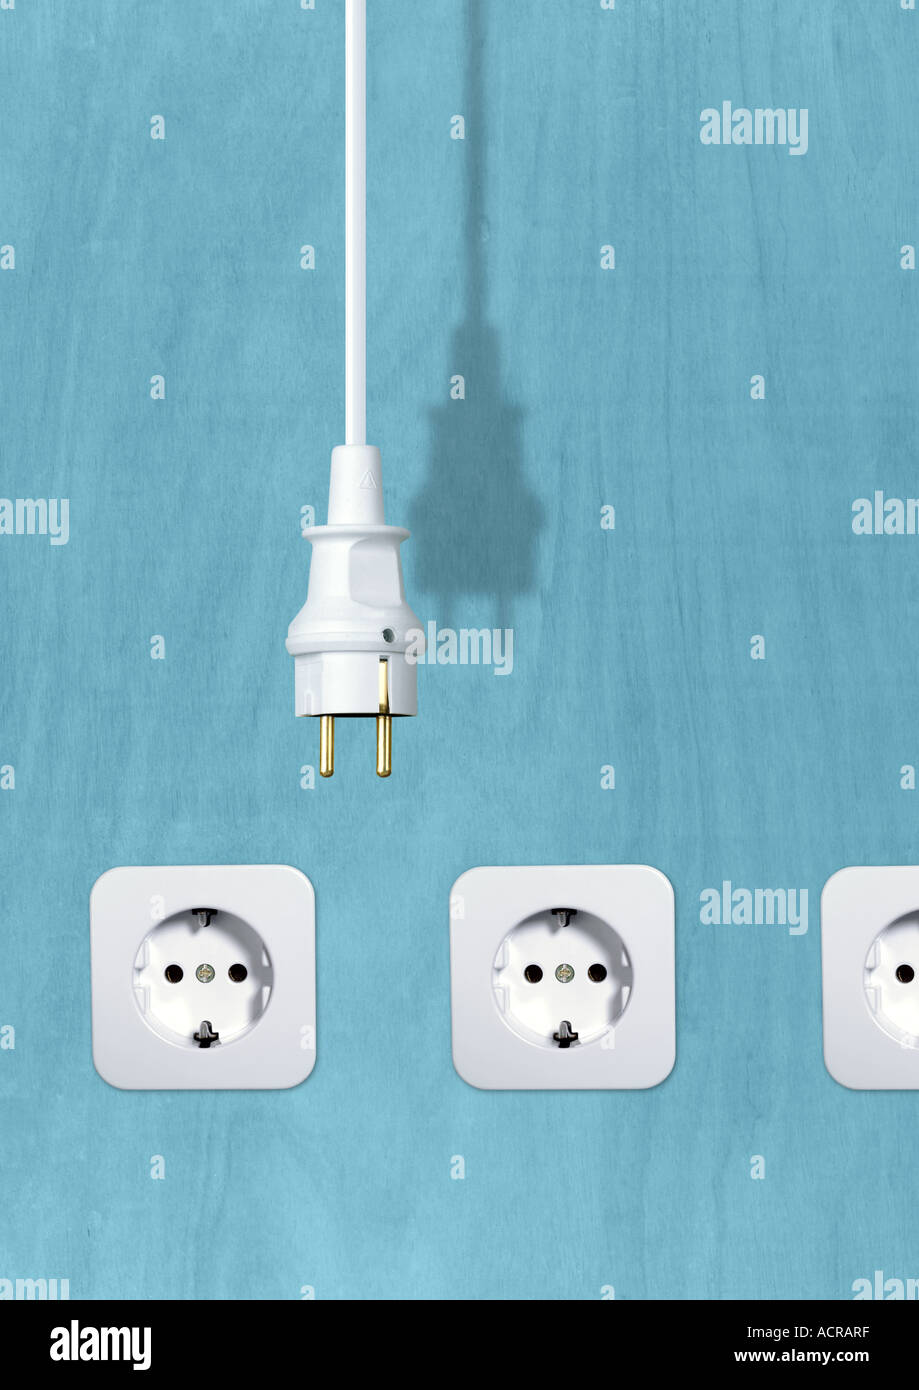 connector and sockets Stecker und Steckdosen - Stock Image